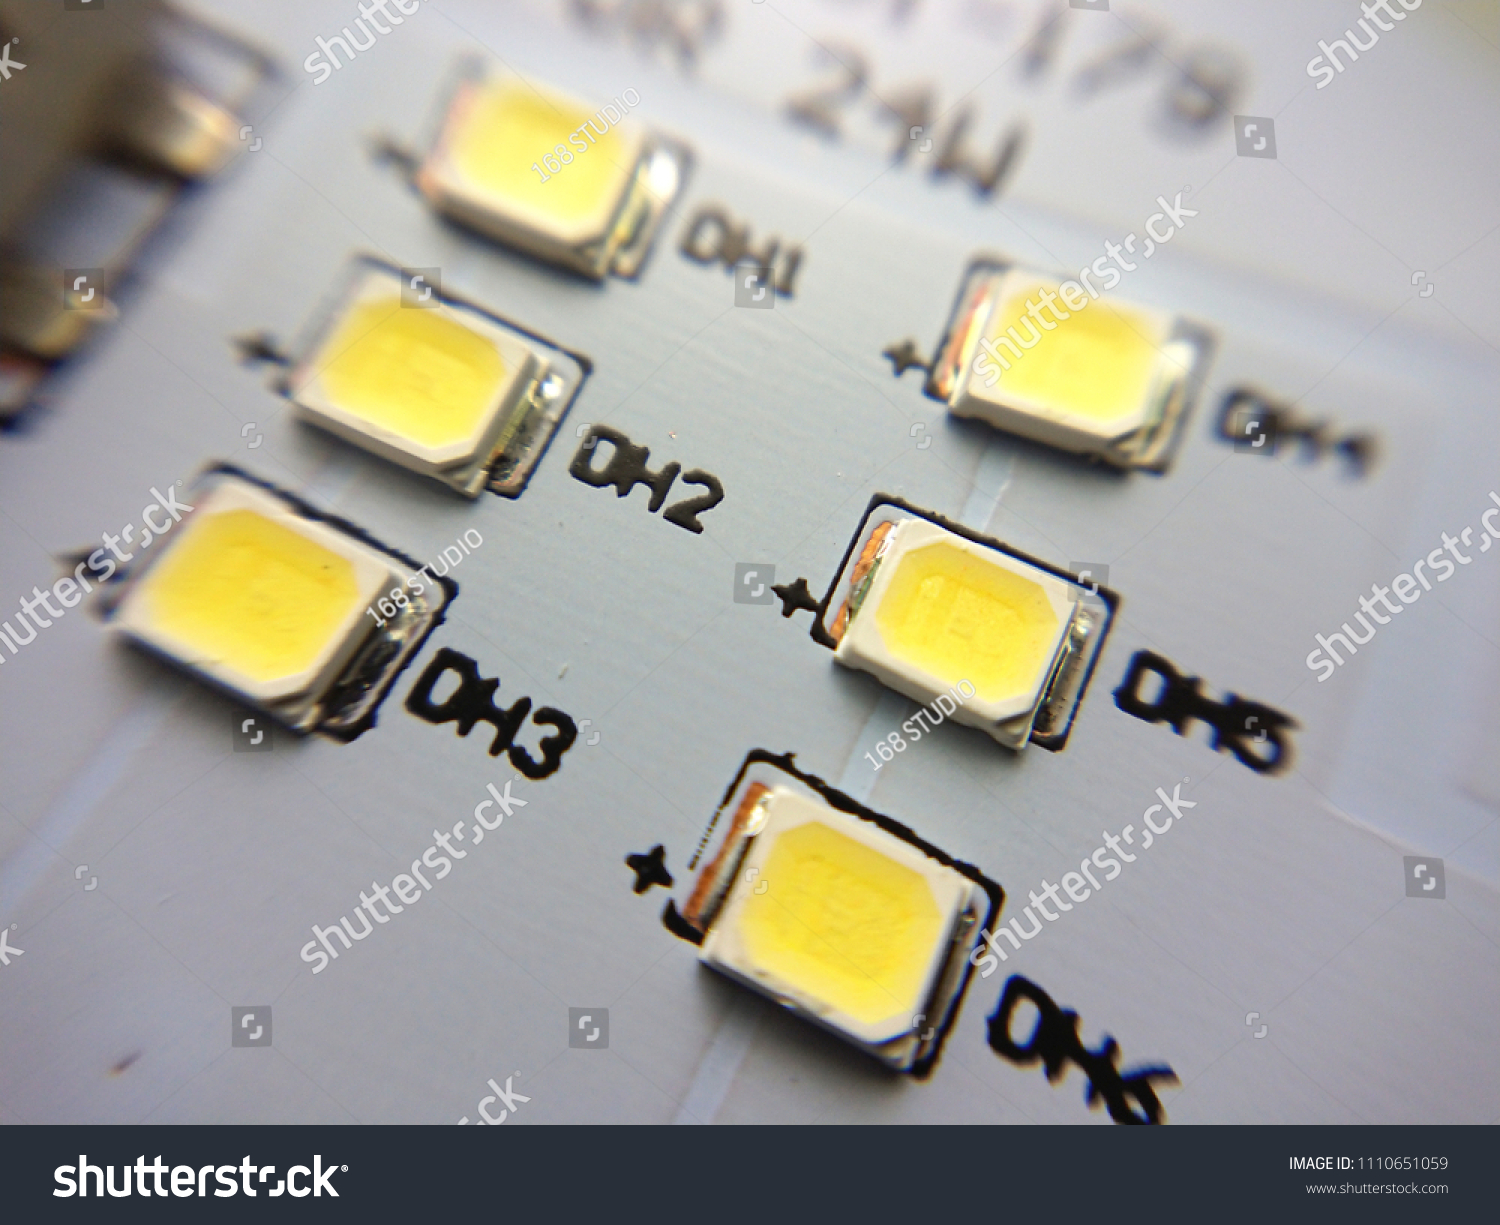 Close Pcb Board Led Smd Lamp Stock Photo Edit Now 1110651059 Containing Electronic Components The Circuit Is Printed On Its Surface Up With White Background Light Emitting Diode